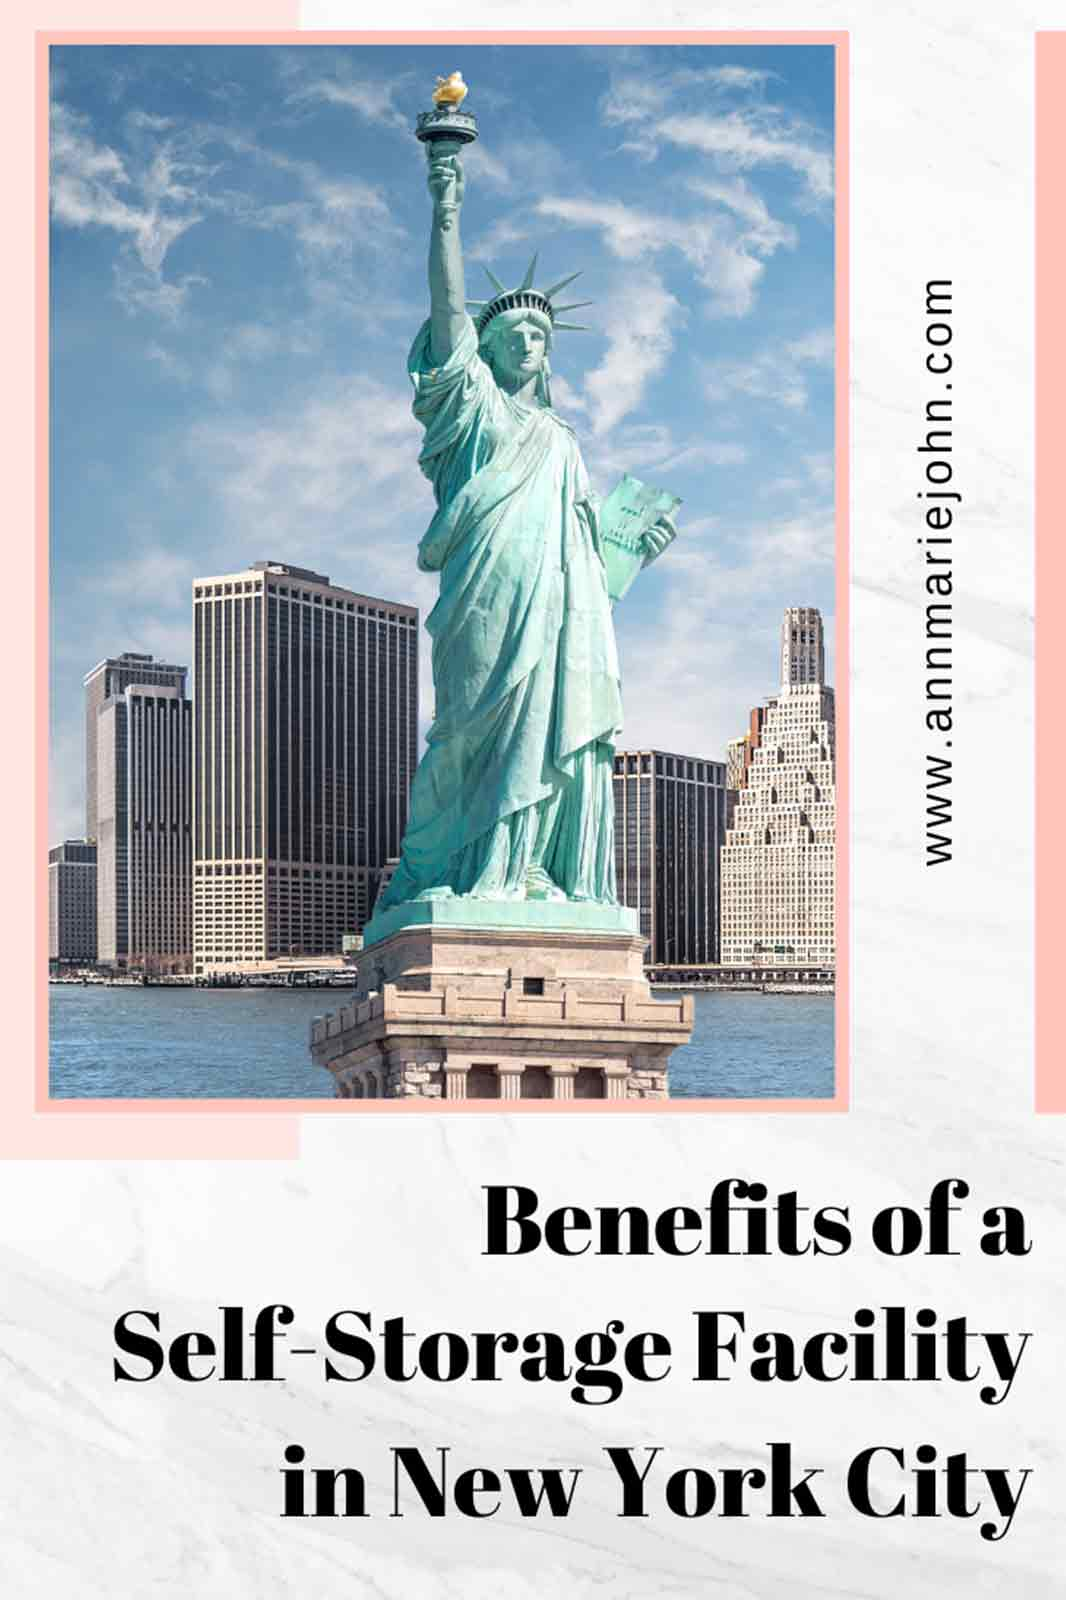 Benefits of a Self-Storage Facility in New York City